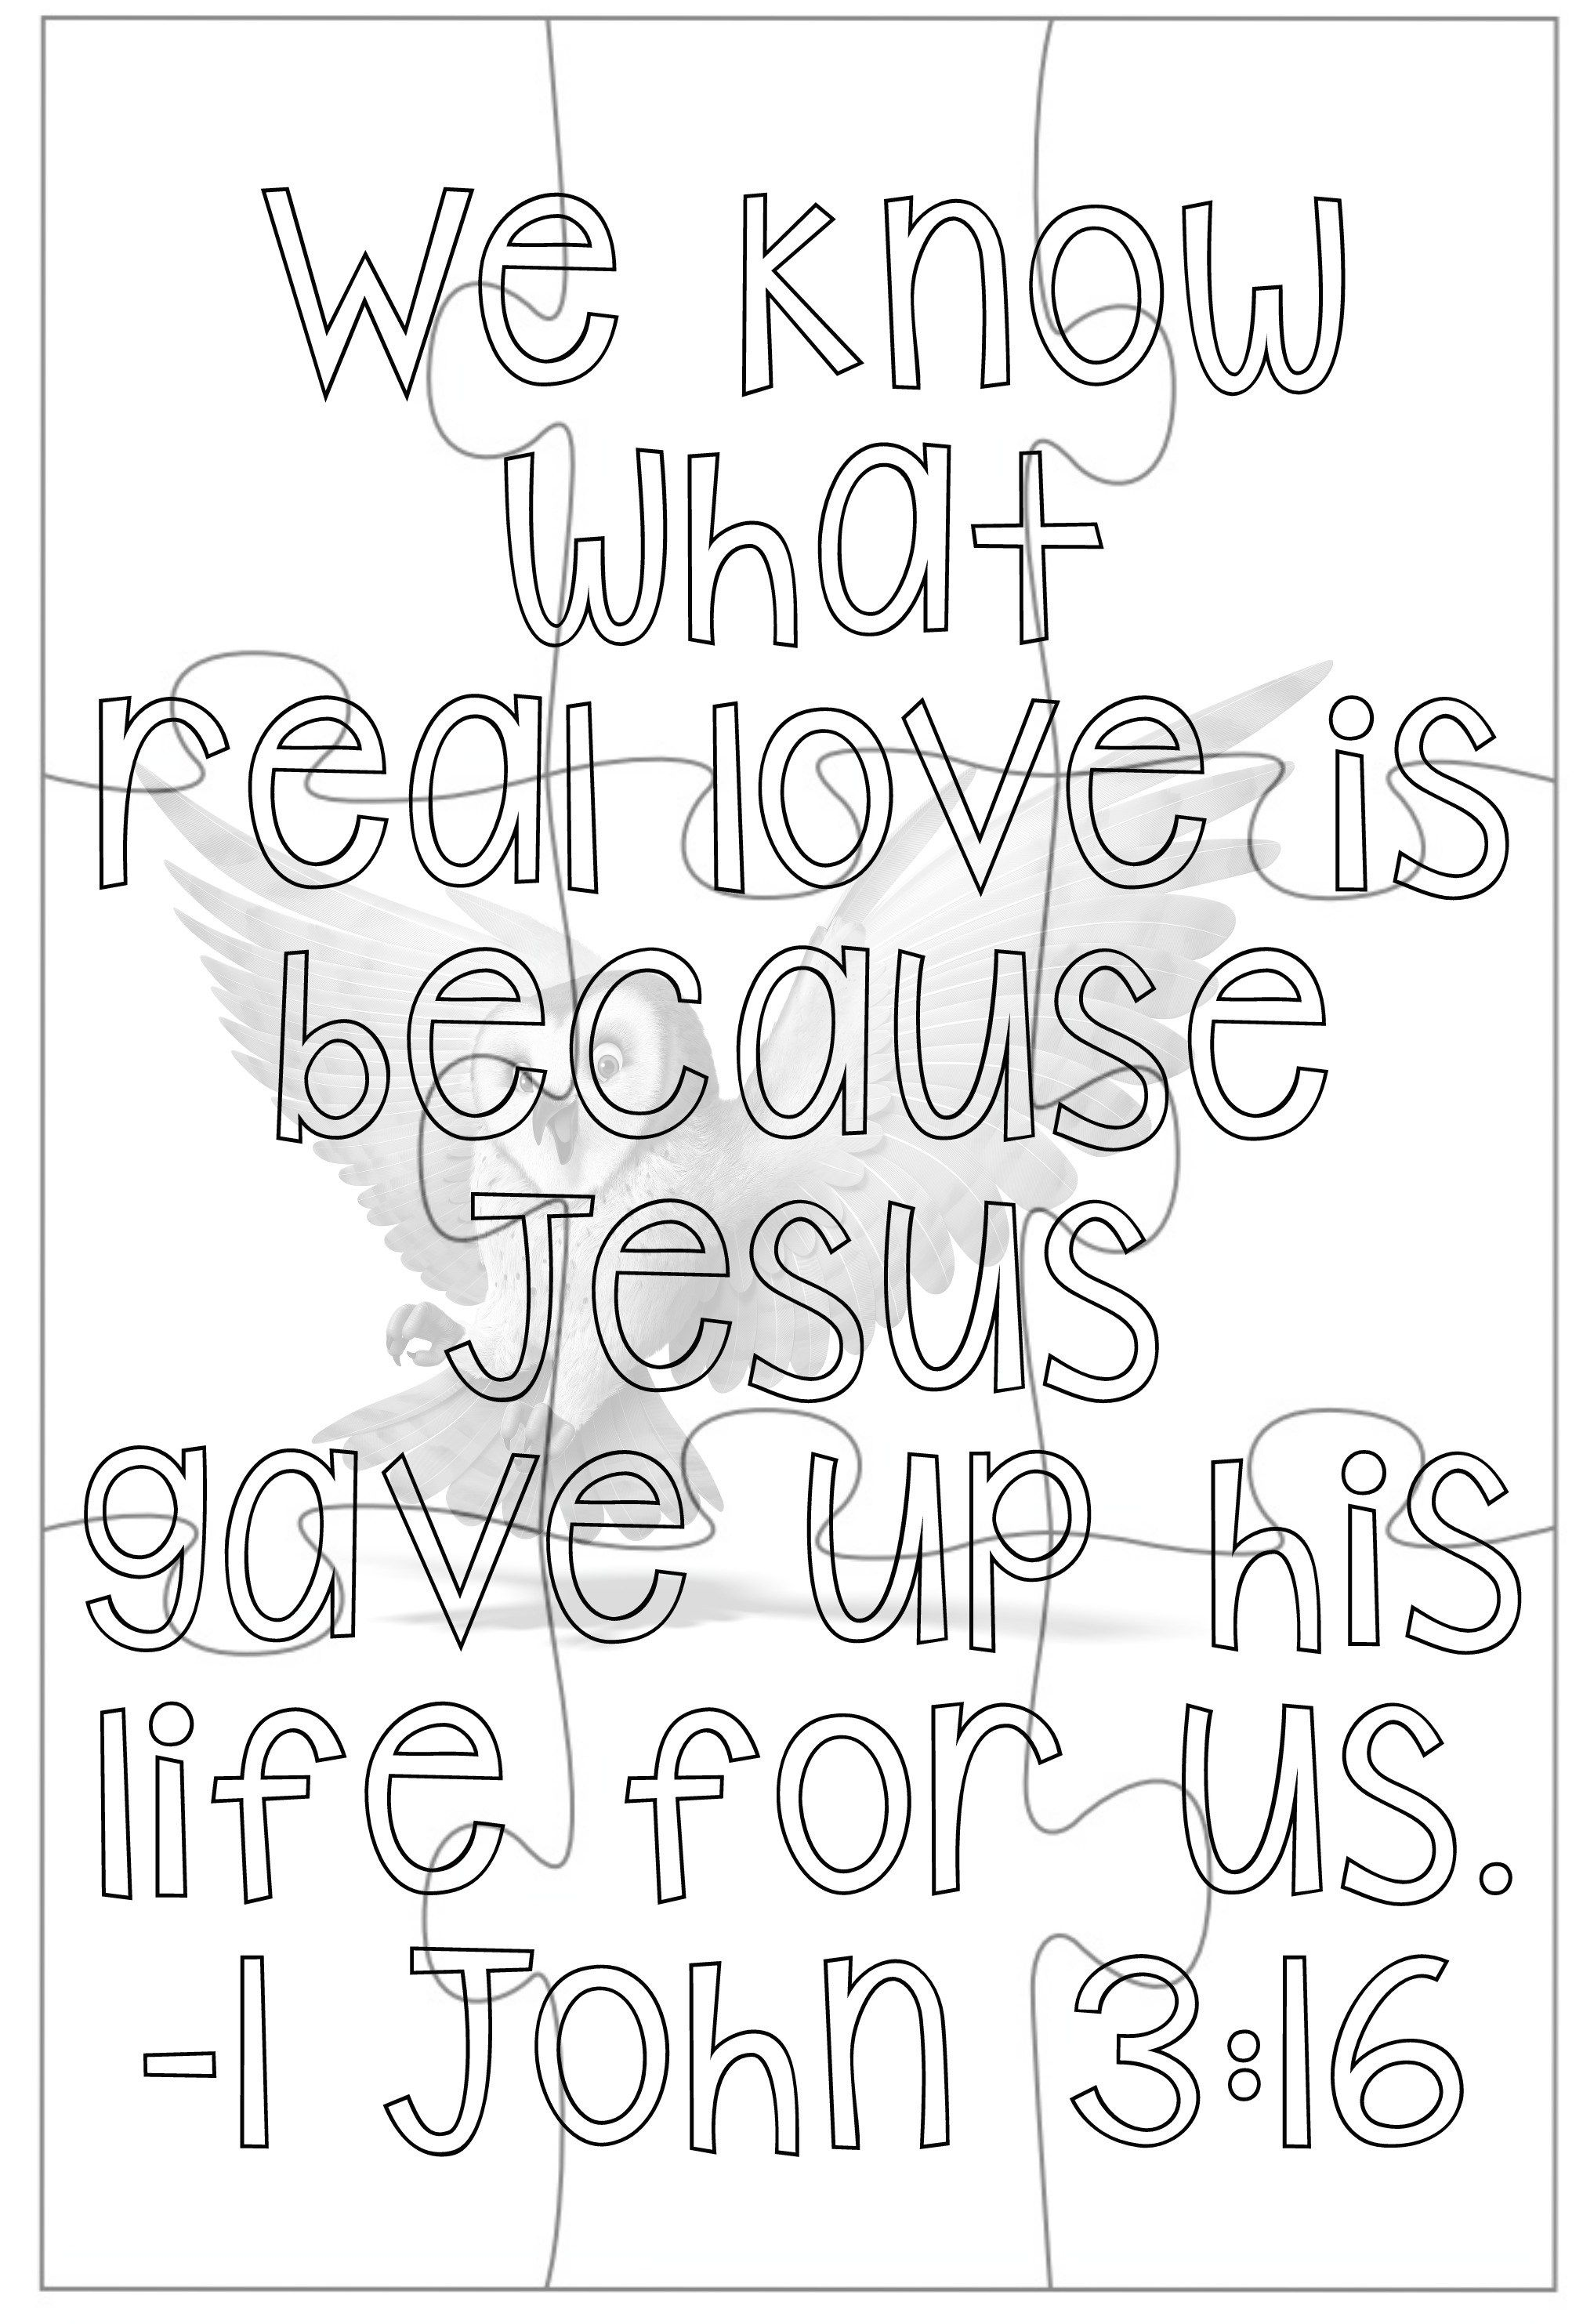 john 3 coloring pages   1 John 3:16 - 9 piece - Coloring Book   VBS   Printable ...